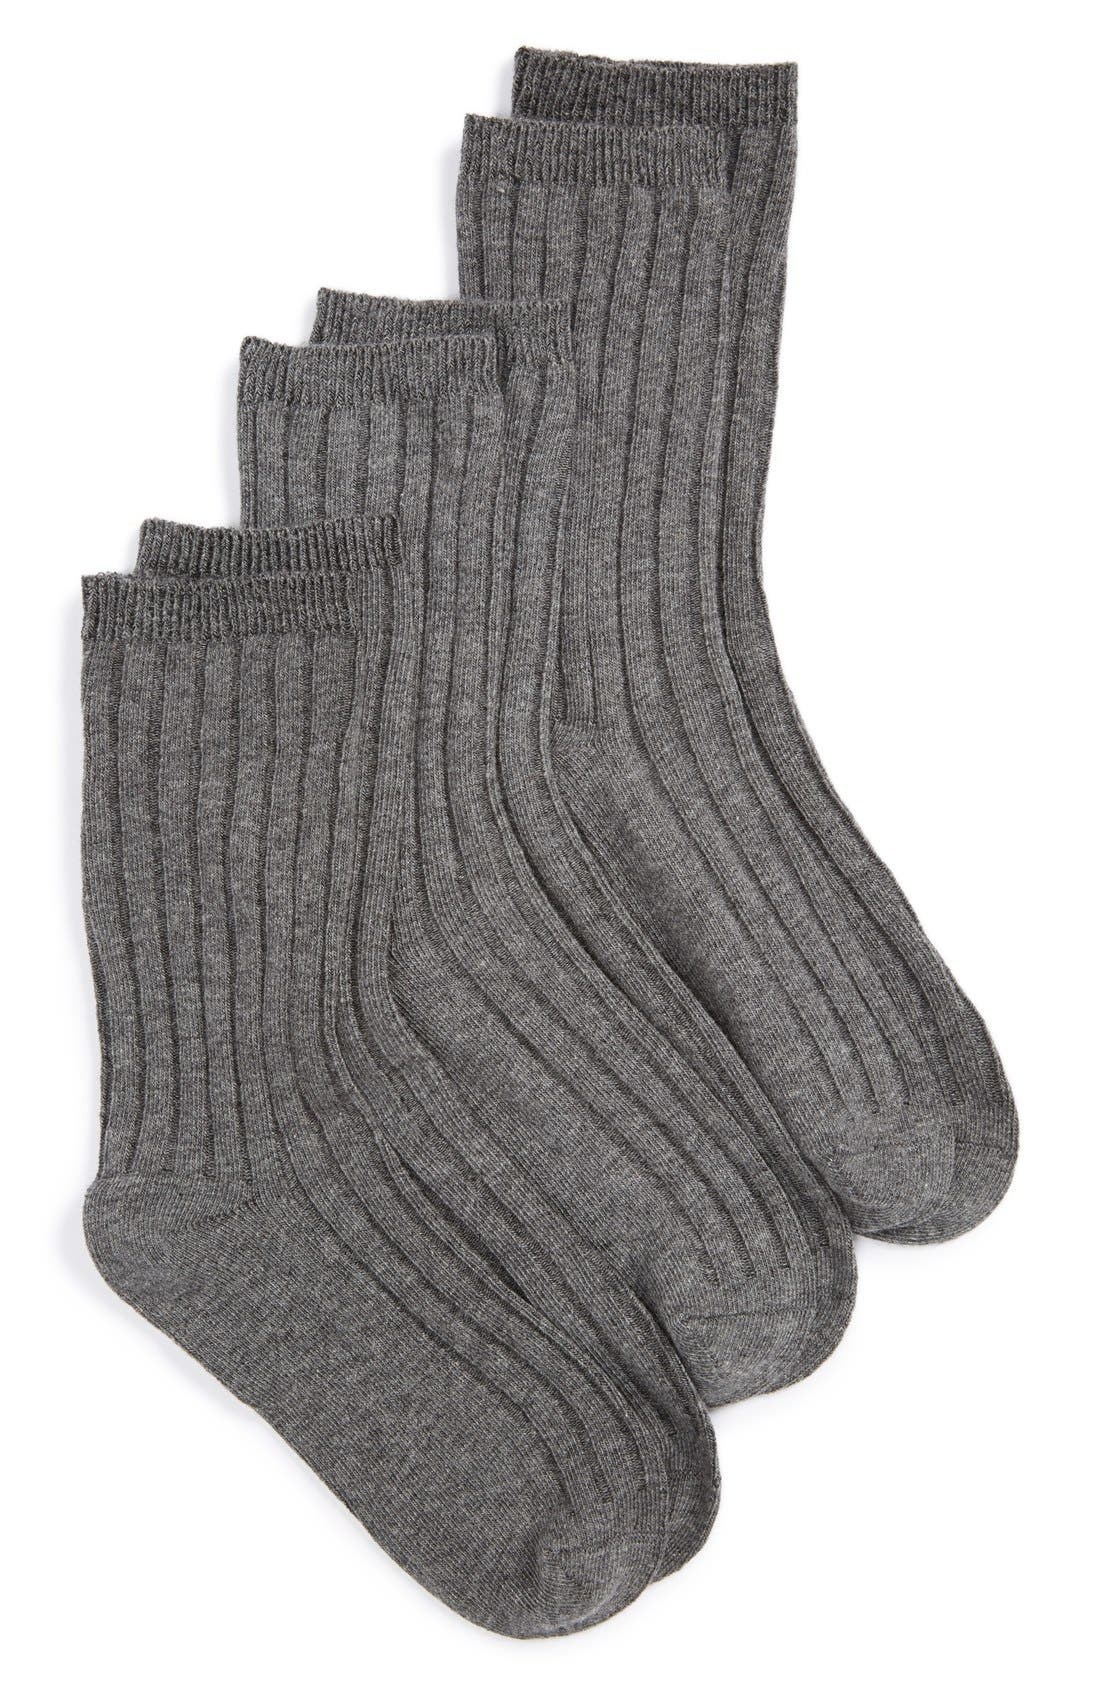 Alternate Image 1 Selected - Nordstrom 3-Pack Dress Socks (Toddler Boys, Little Boys & Big Boys)